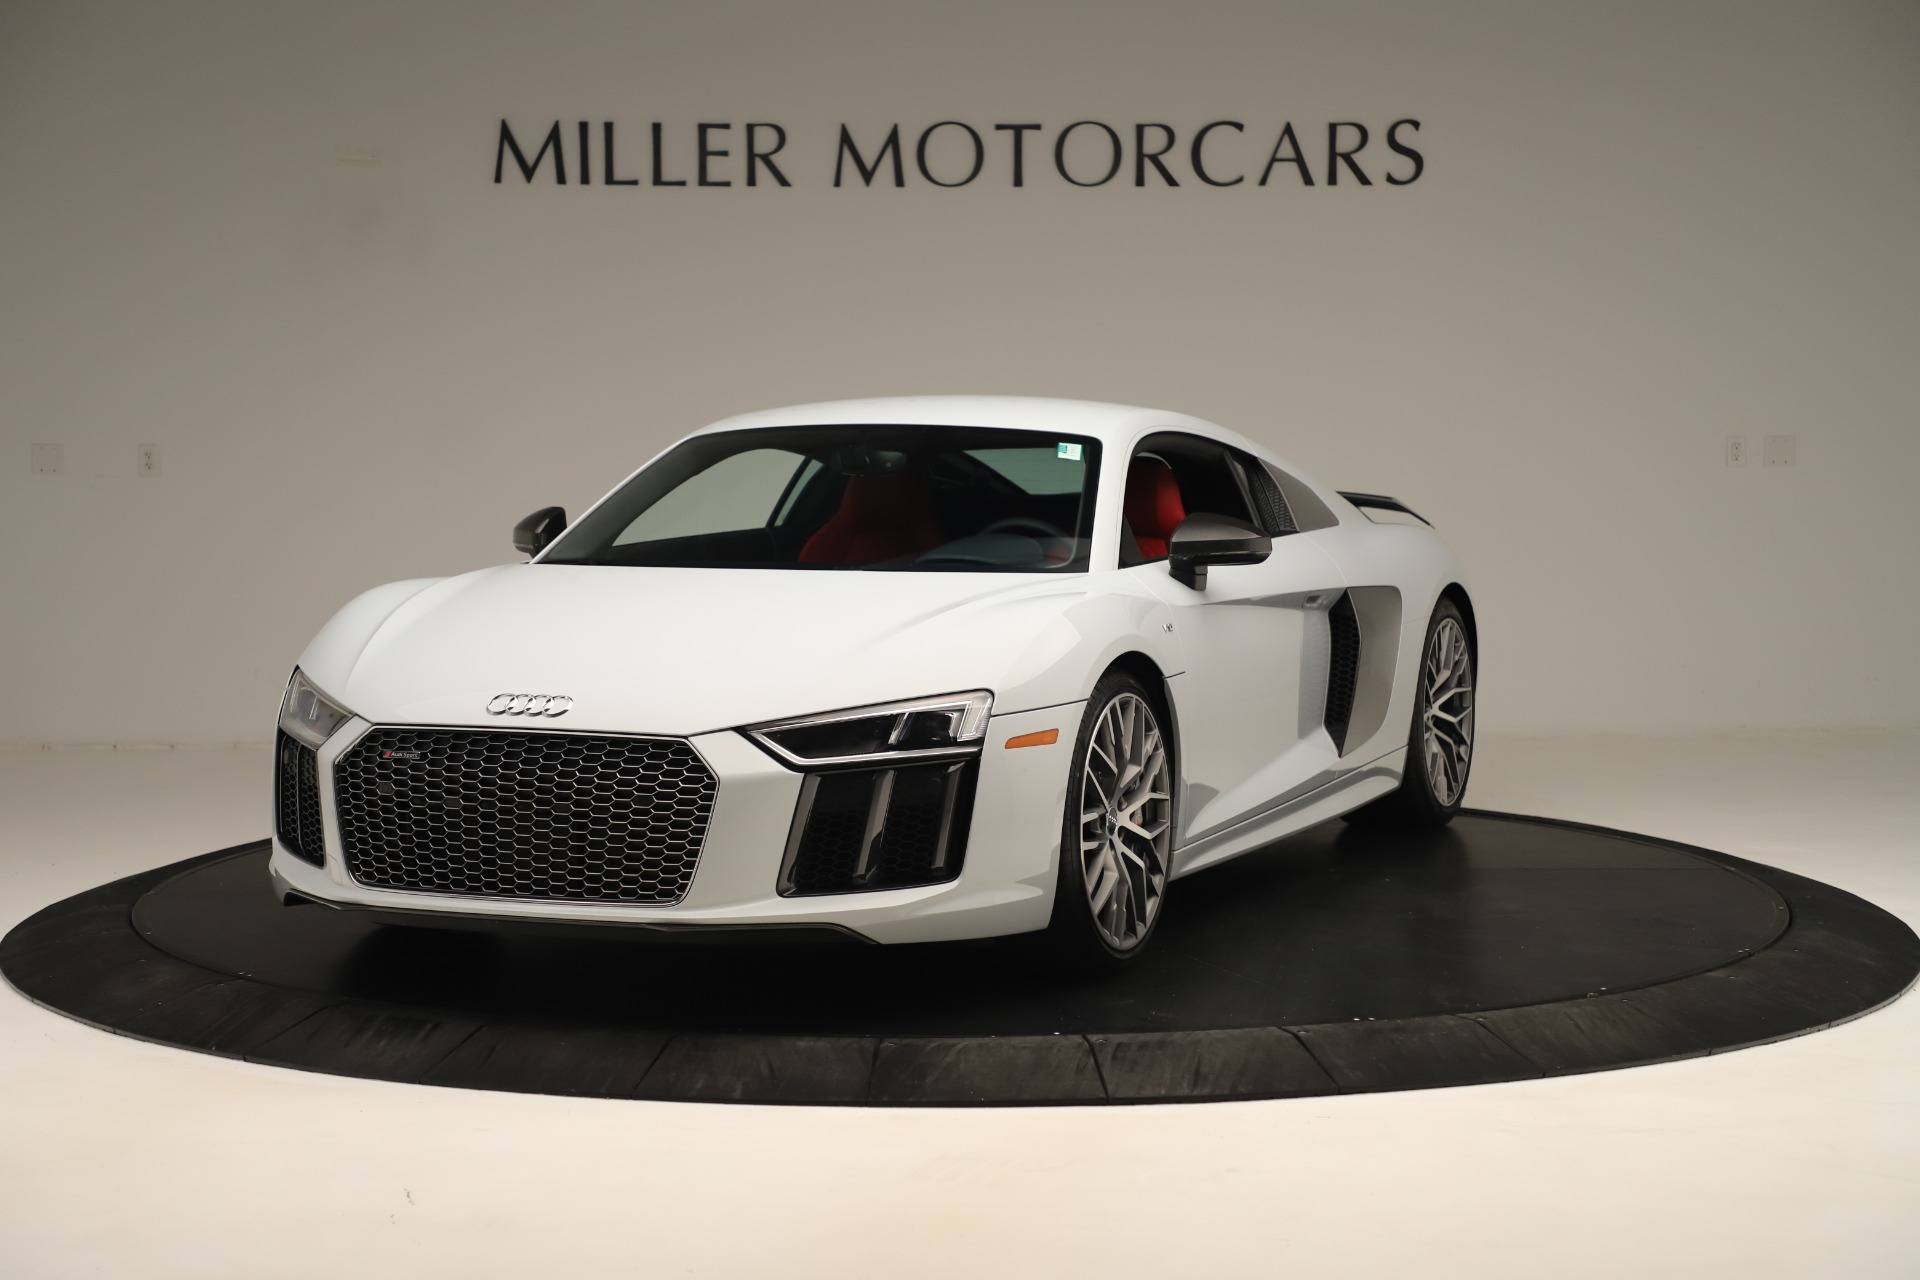 Used 2018 Audi R8 5.2 quattro V10 Plus for sale Sold at Rolls-Royce Motor Cars Greenwich in Greenwich CT 06830 1